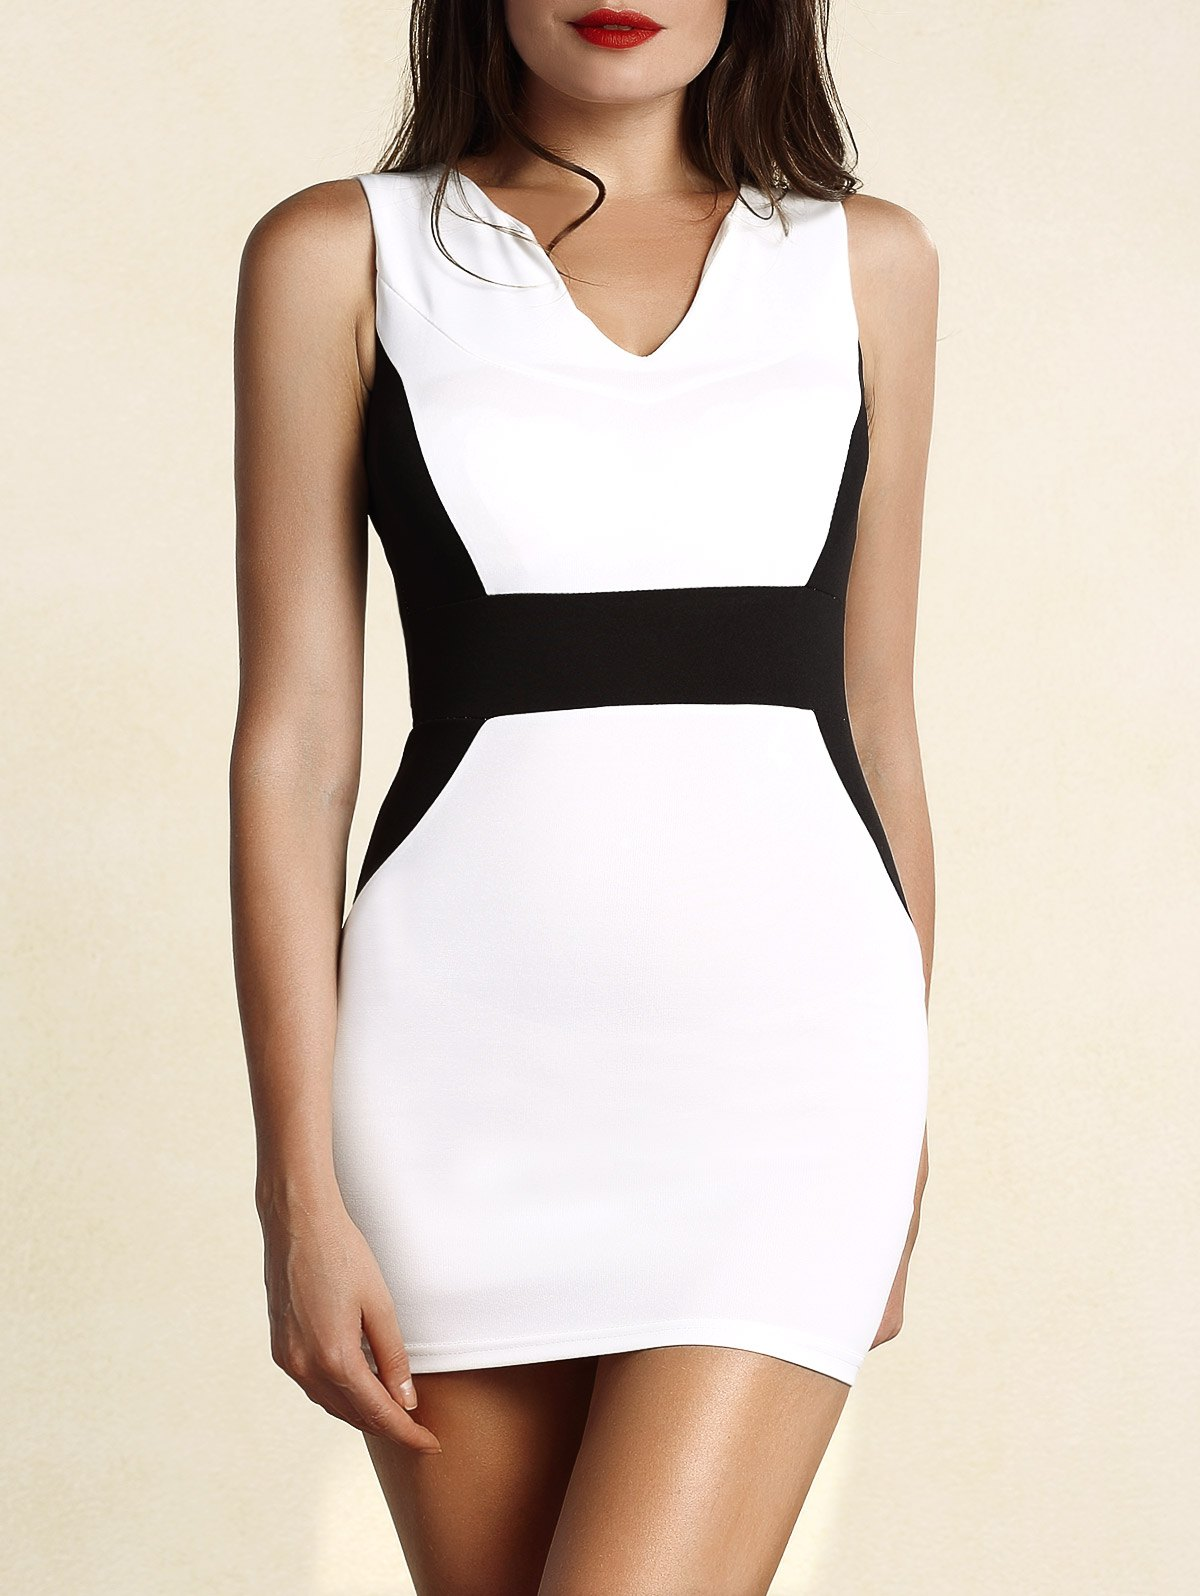 Sophisticated Round Collar Sleeveless Color Block Women's Dress - WHITE S